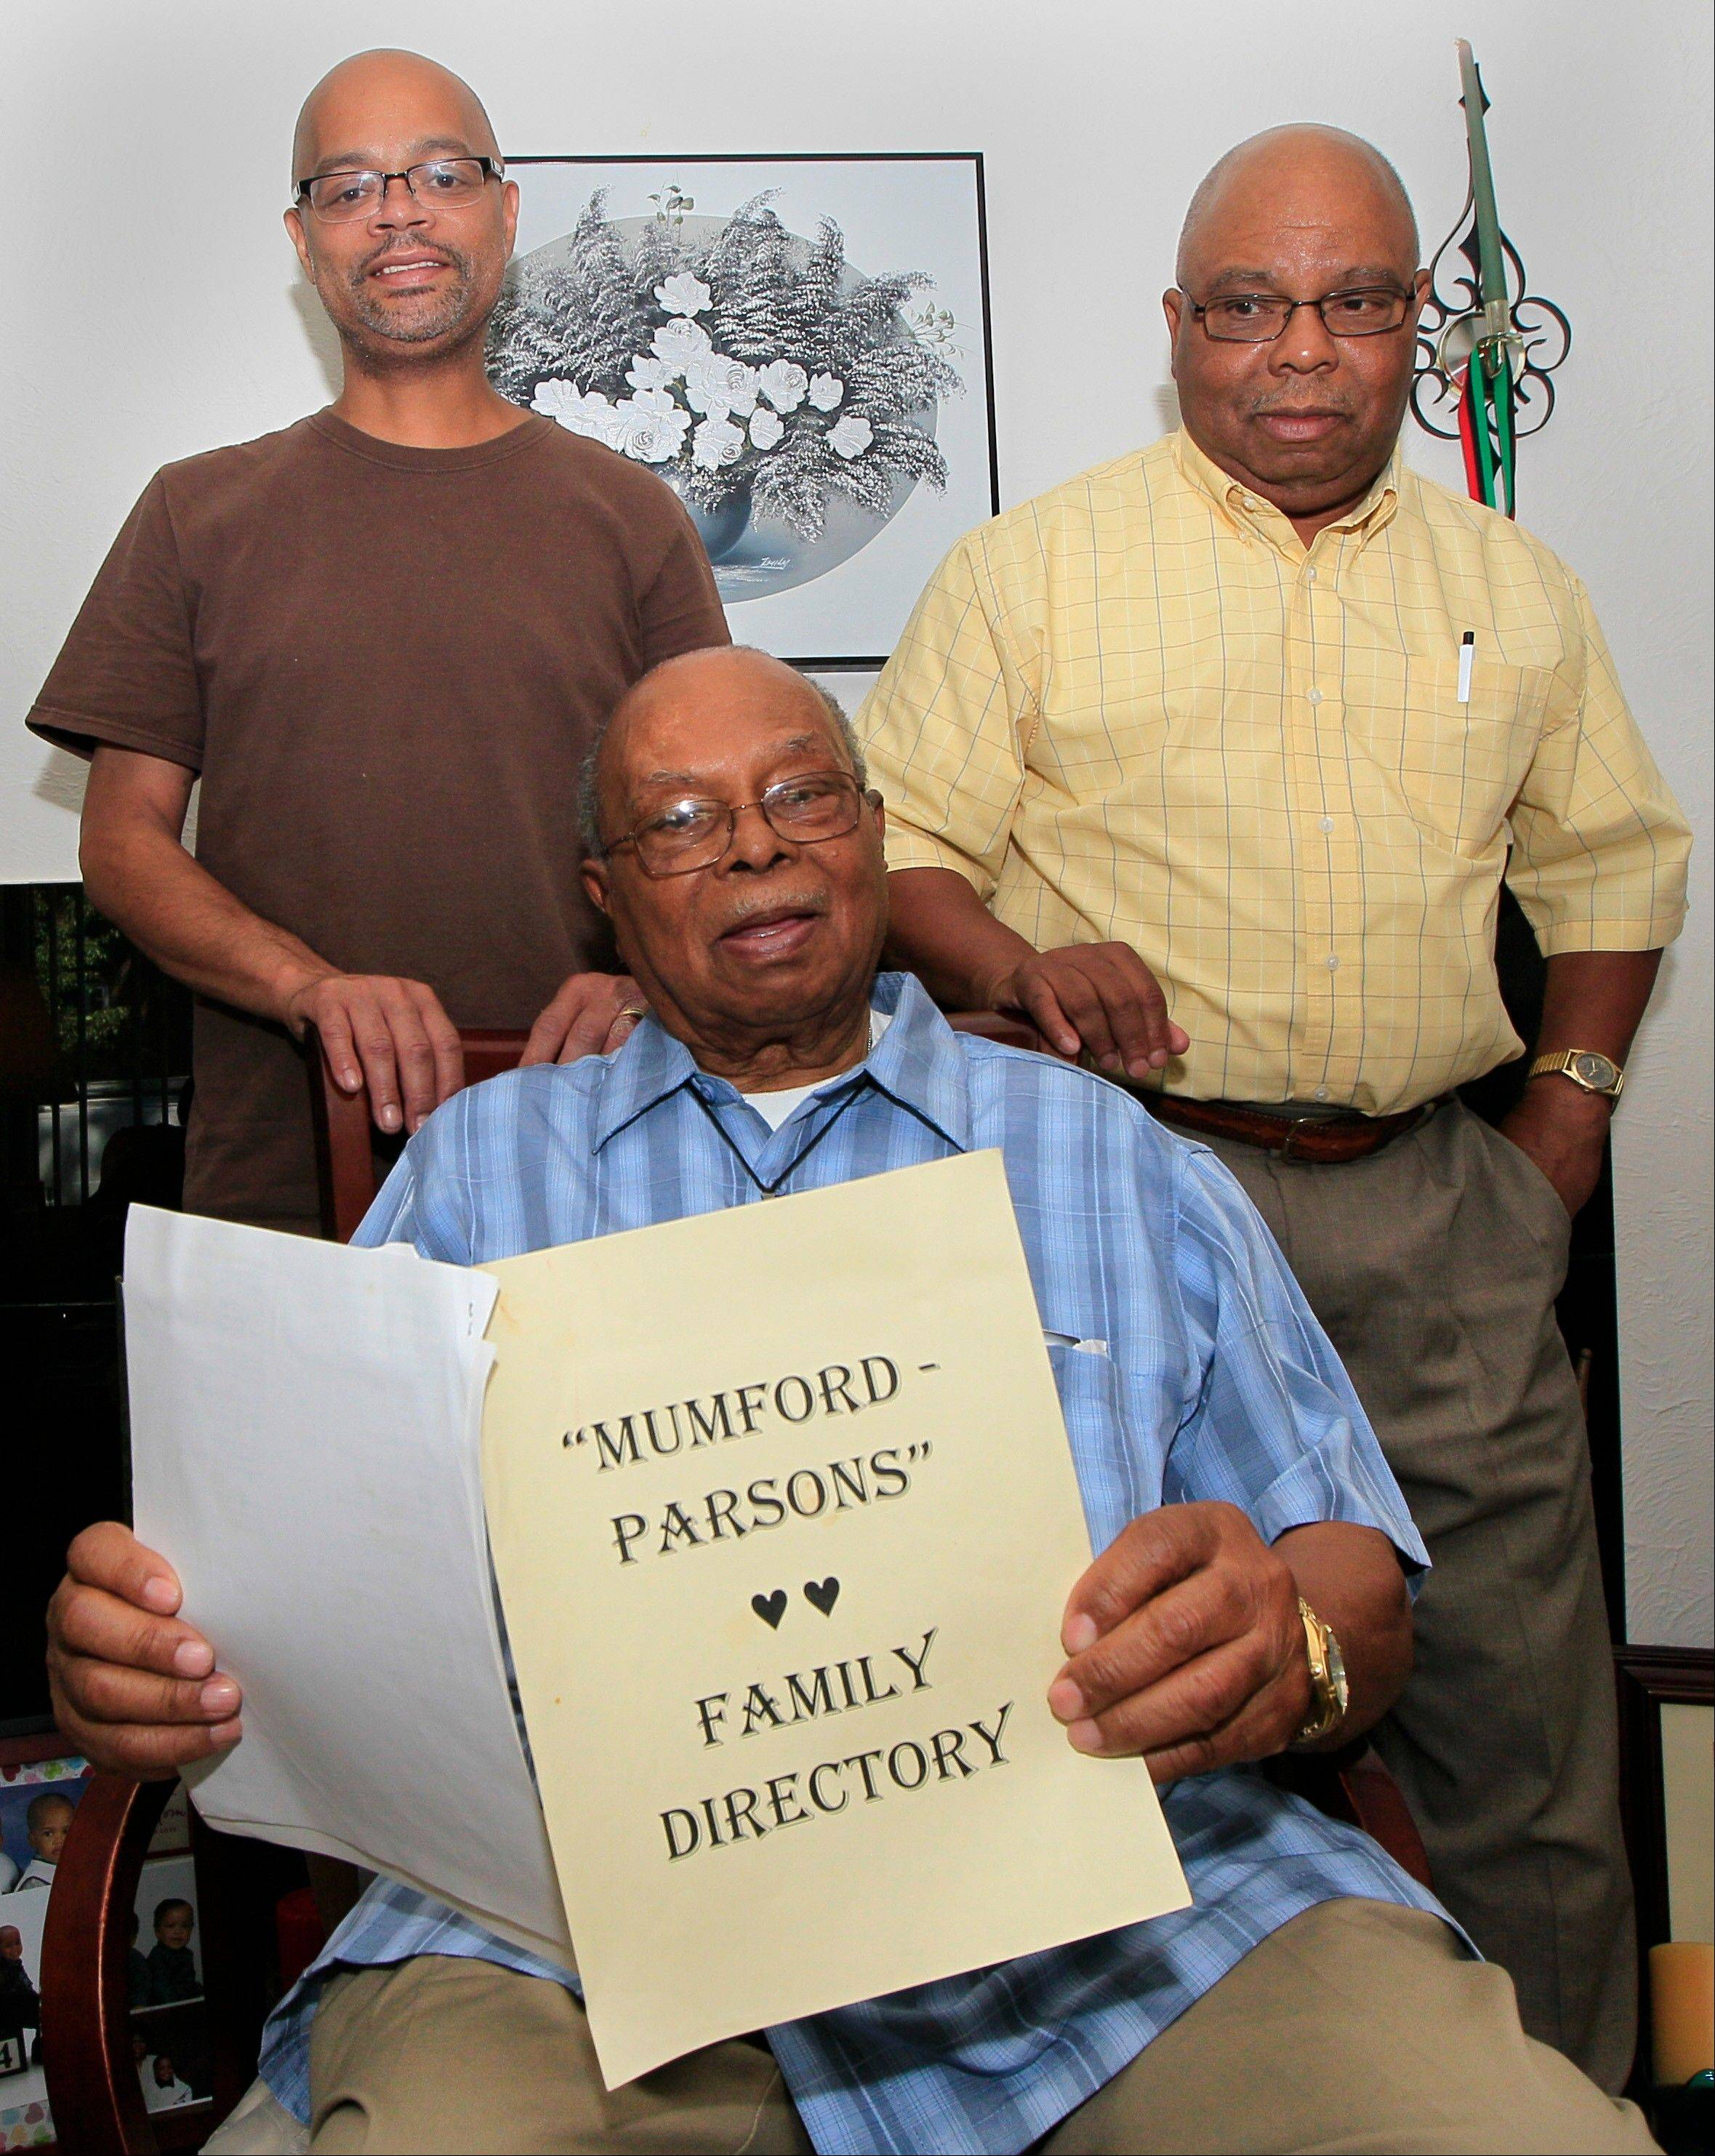 Jewell Wilson, foreground, great-grandson of former slave Jordan Anderson, holds a family directory June 25 as he poses with his son, Jewell Wilson Jr., left, and his nephew Barry Mumford Wilson in Dayton, Ohio. Anderson, who wrote a remarkable letter to his ex-master, was freed from a Tennessee plantation by Union troops in 1864 and spent his remaining 40 years in Ohio.